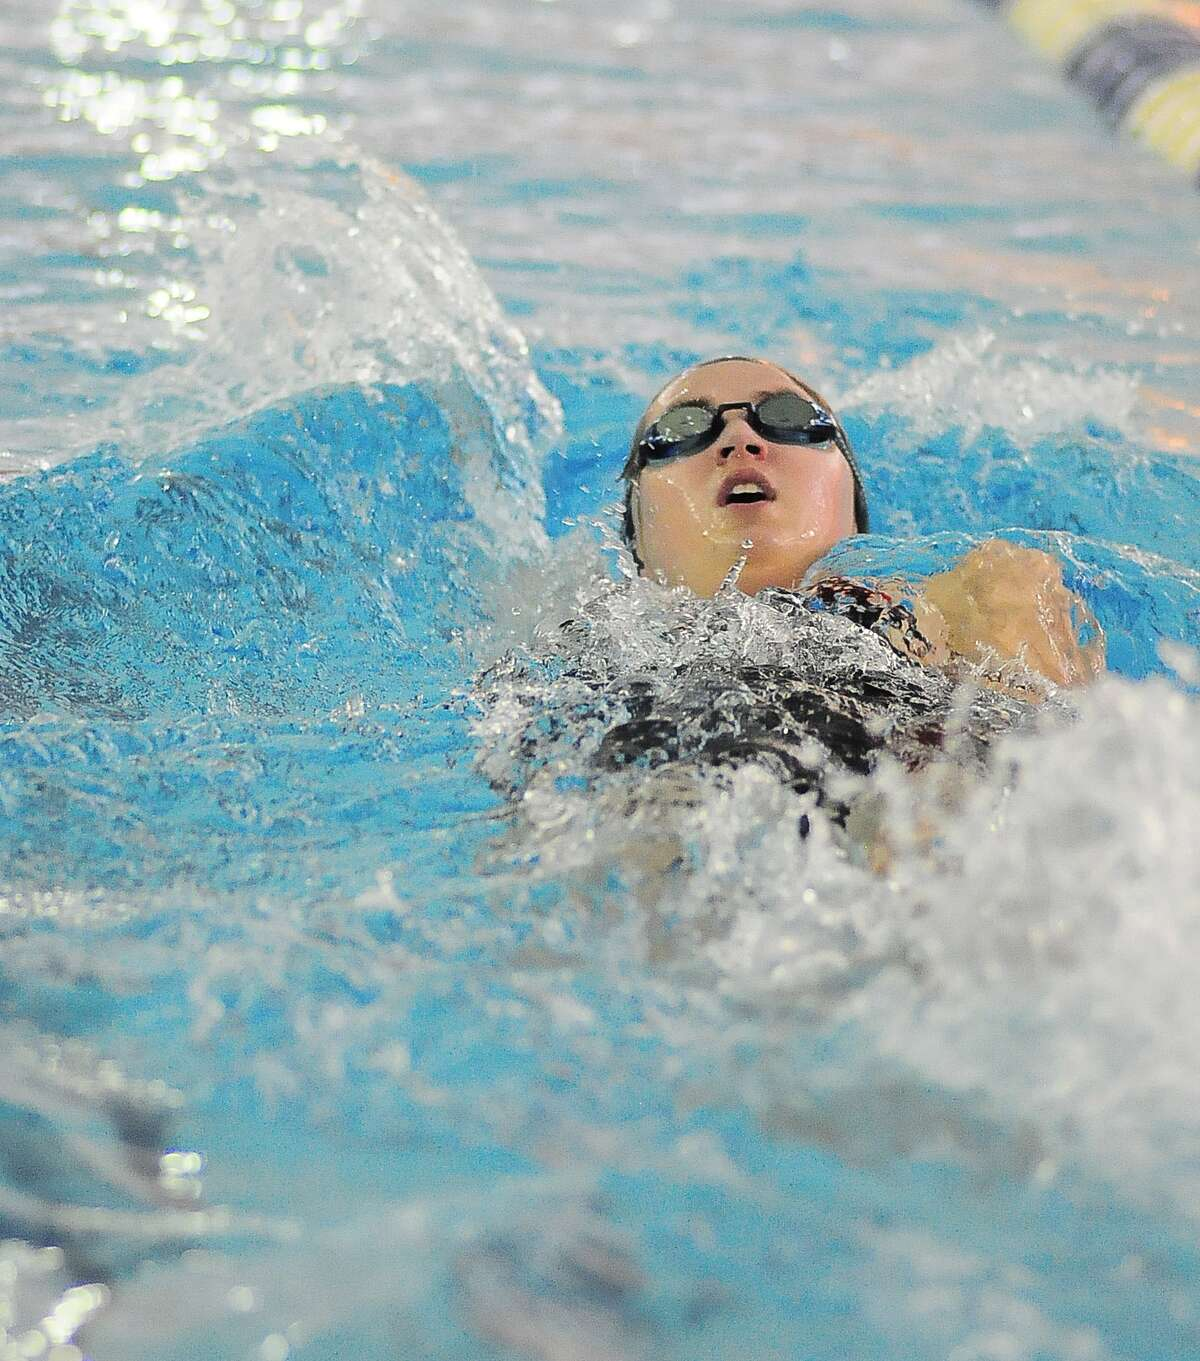 St. John's junior Ellie Strawn and the Mavs have an SPC title challenge in their sights.